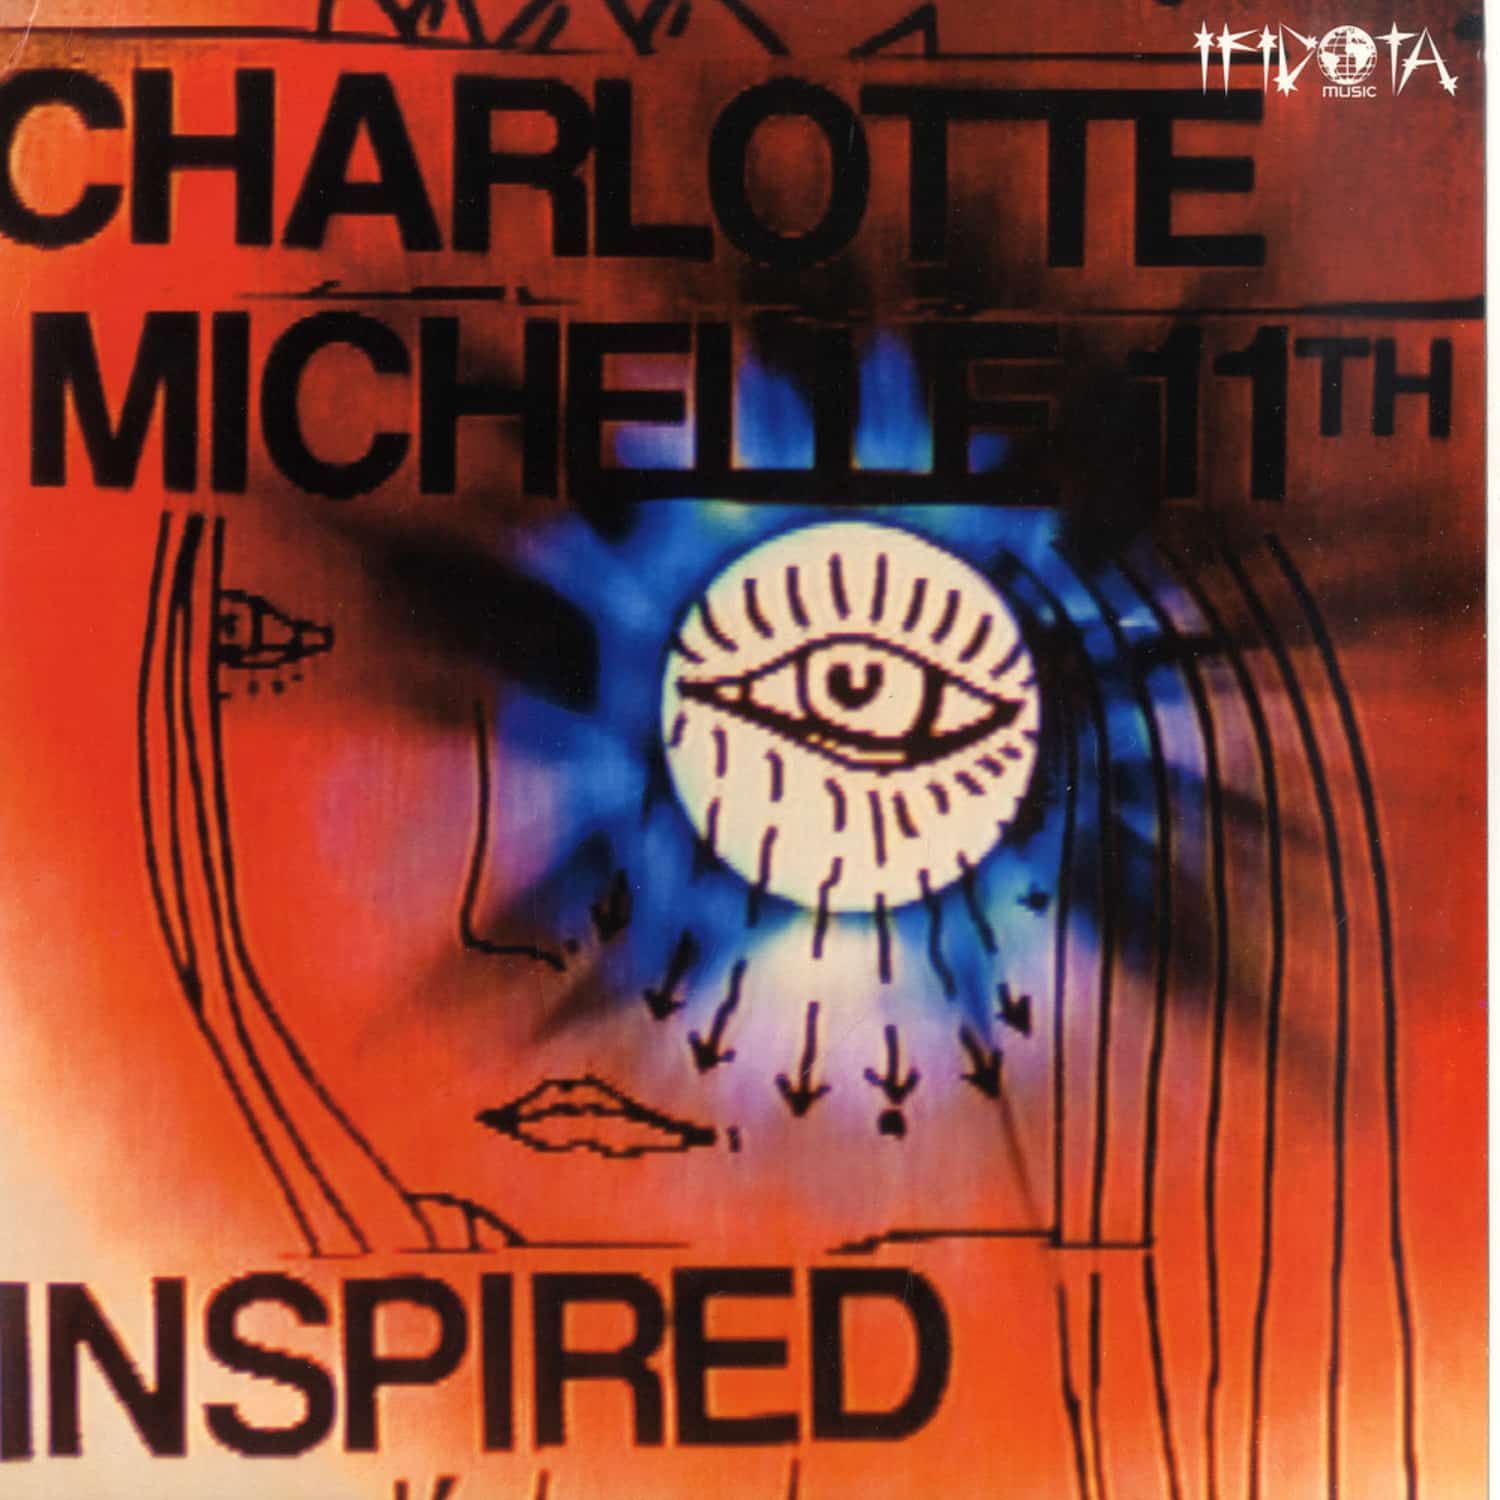 Charlotte Michelle 11th - INSPIRED